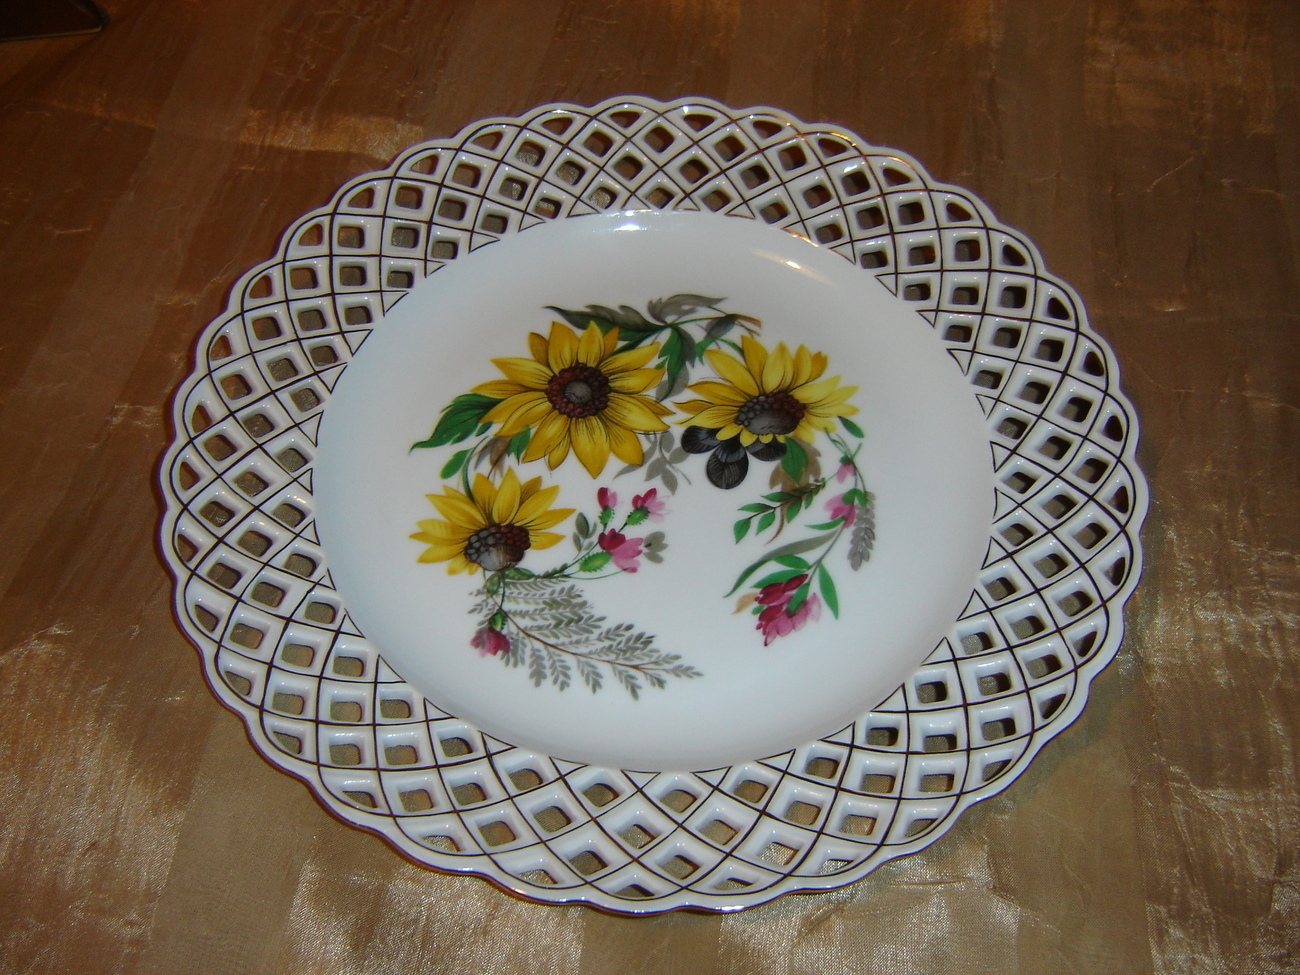 Porcelain handmade  Weave Lace Decorative Plate